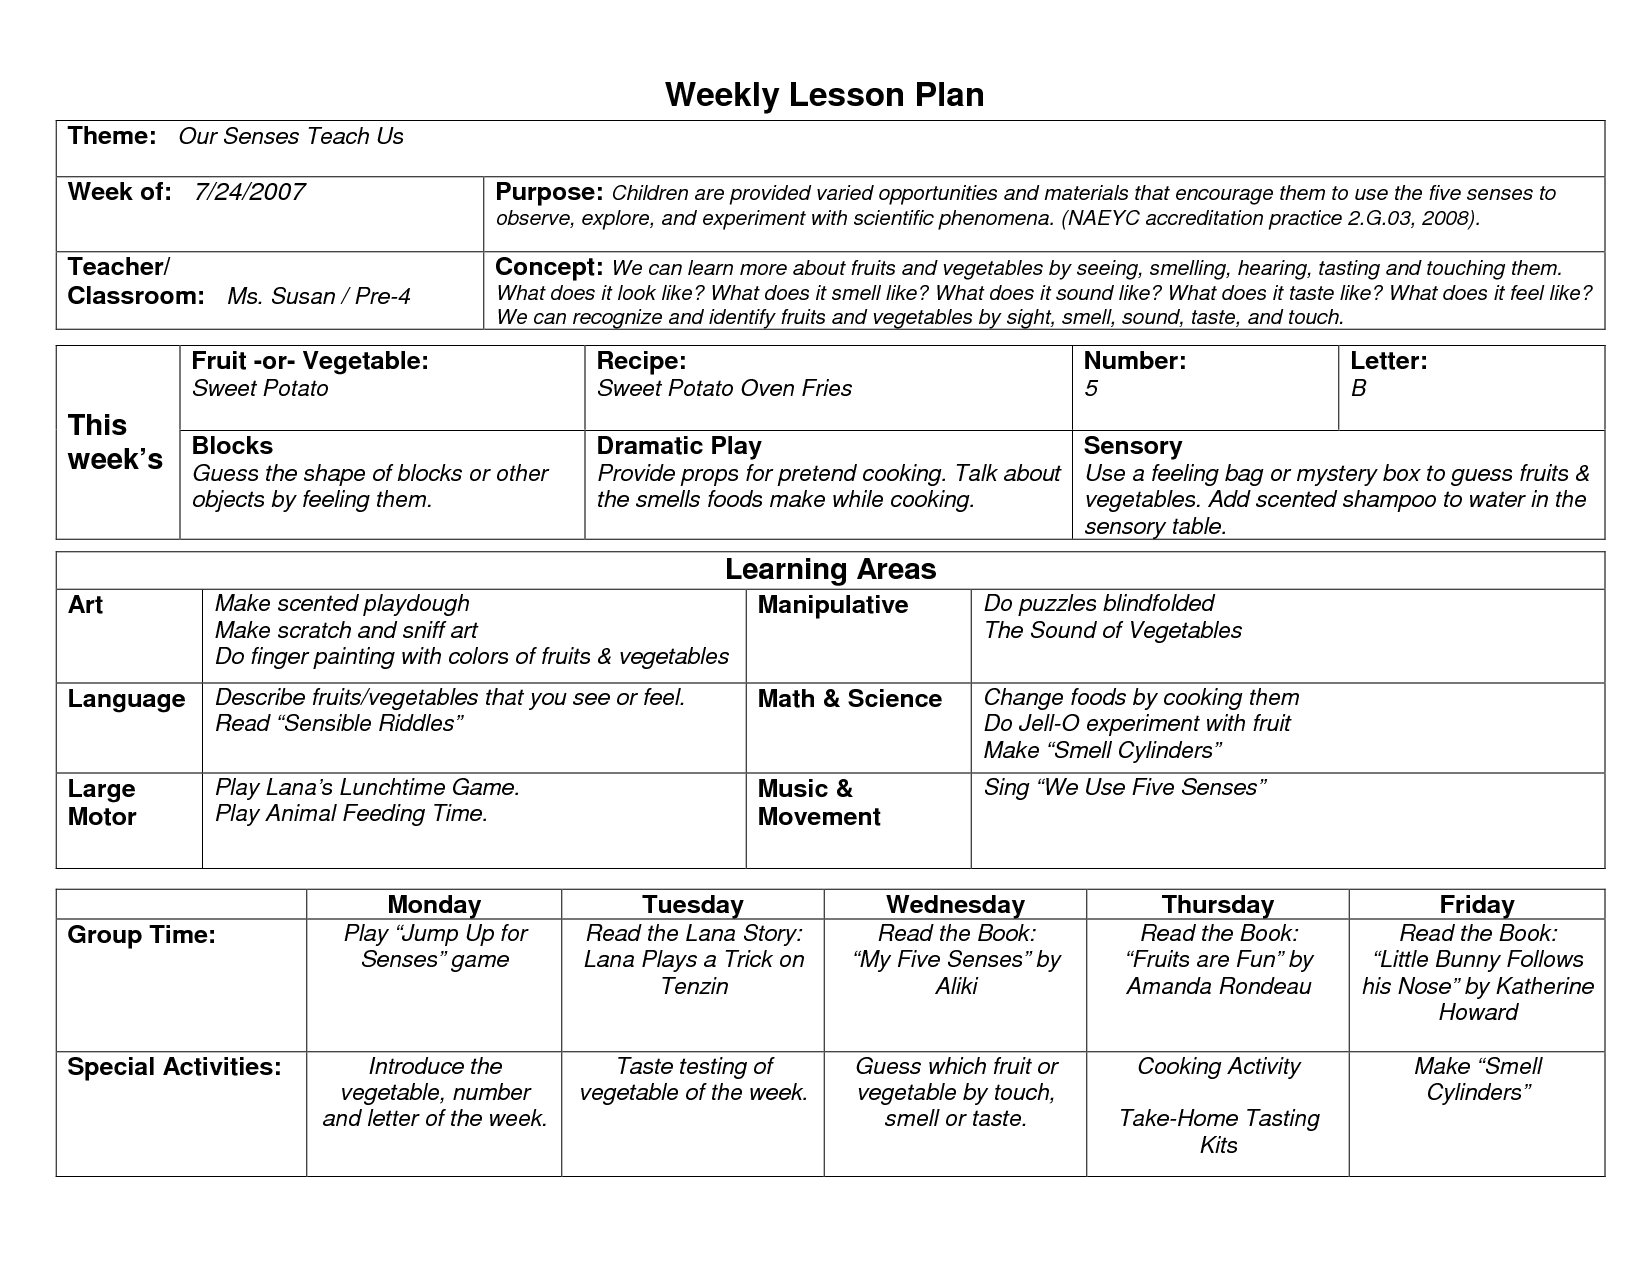 Naeyc Lesson Plan Template For Preschool | Sample Weekly